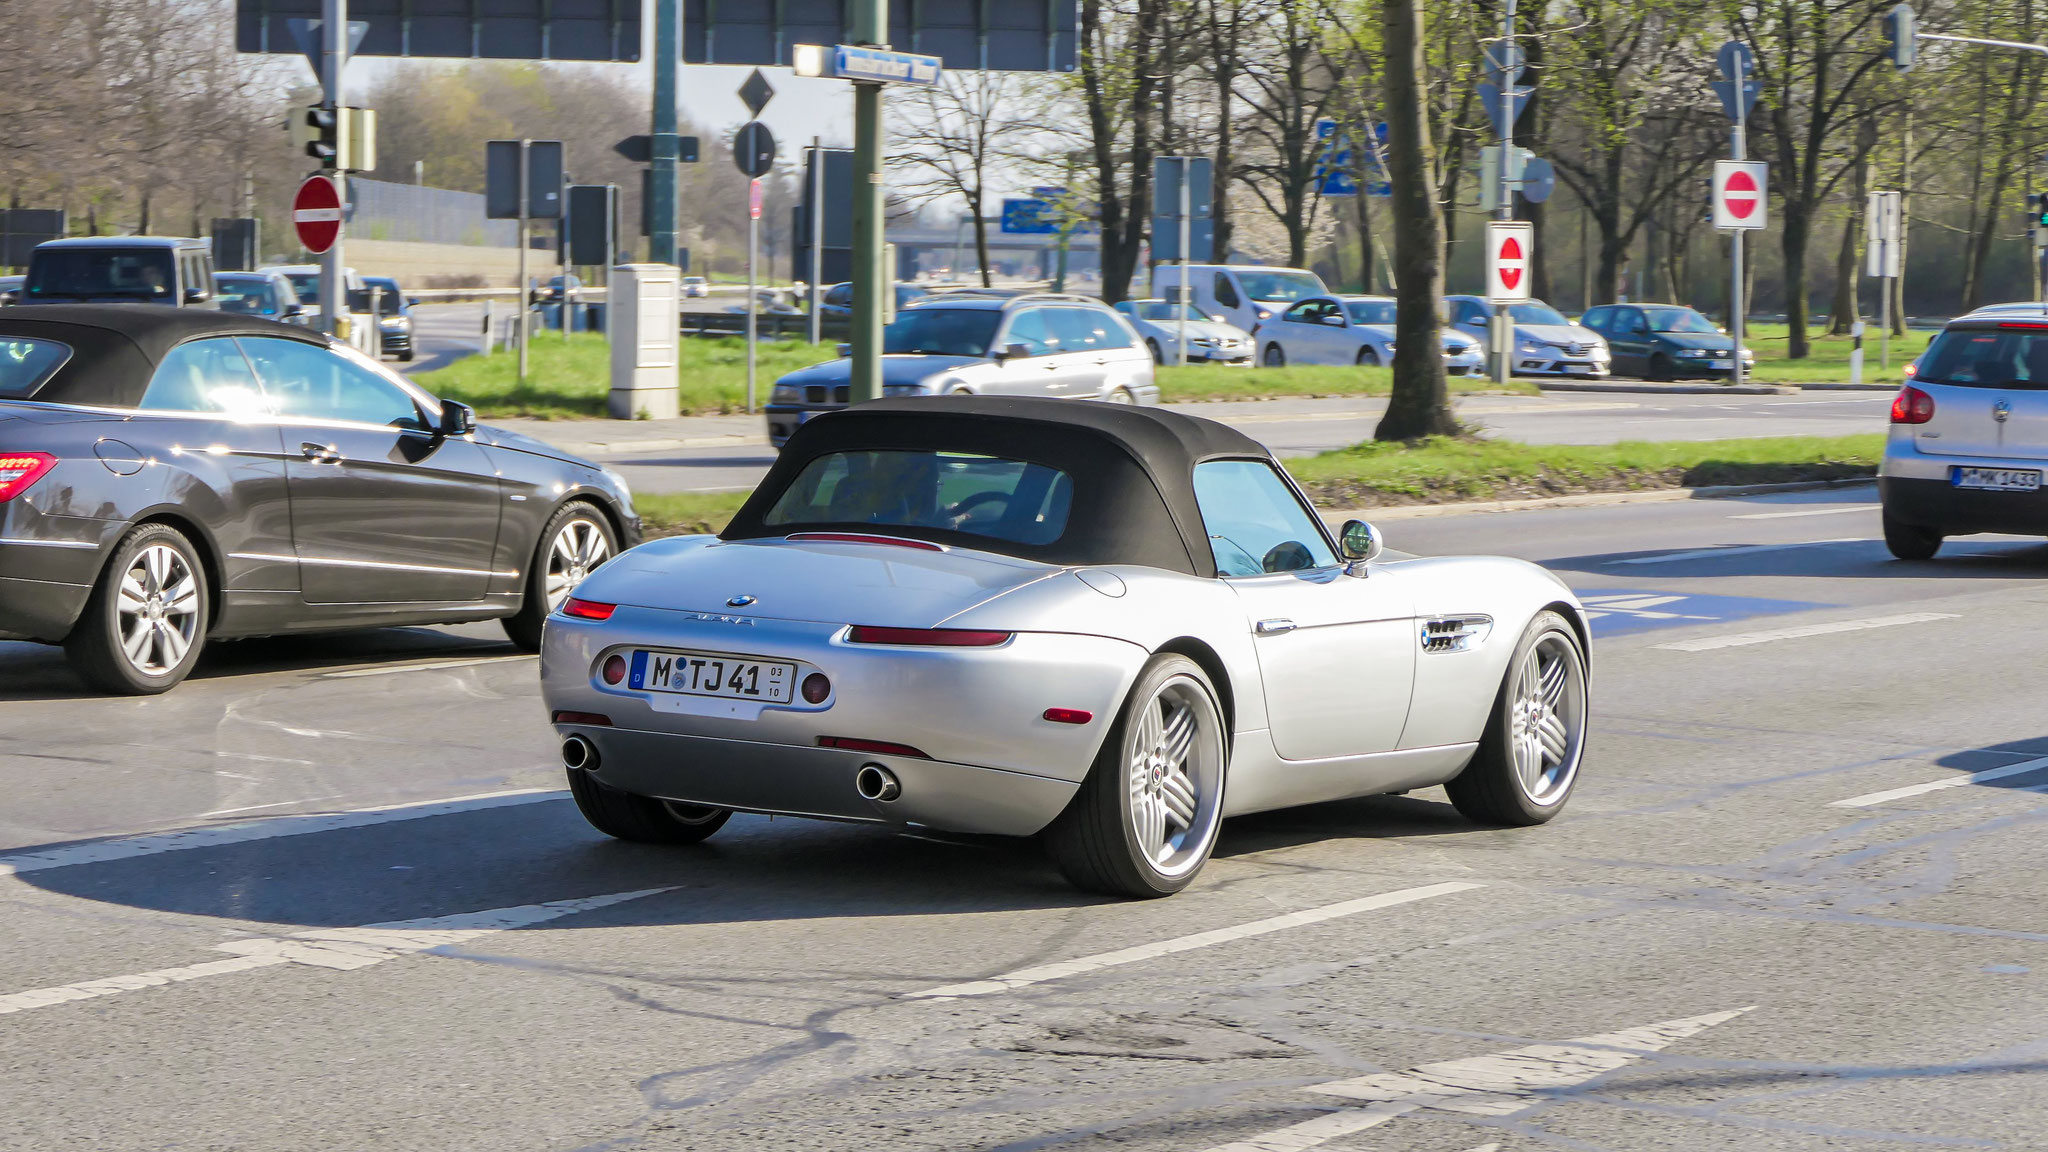 BMW Alpina Z8 - M-TJ-41